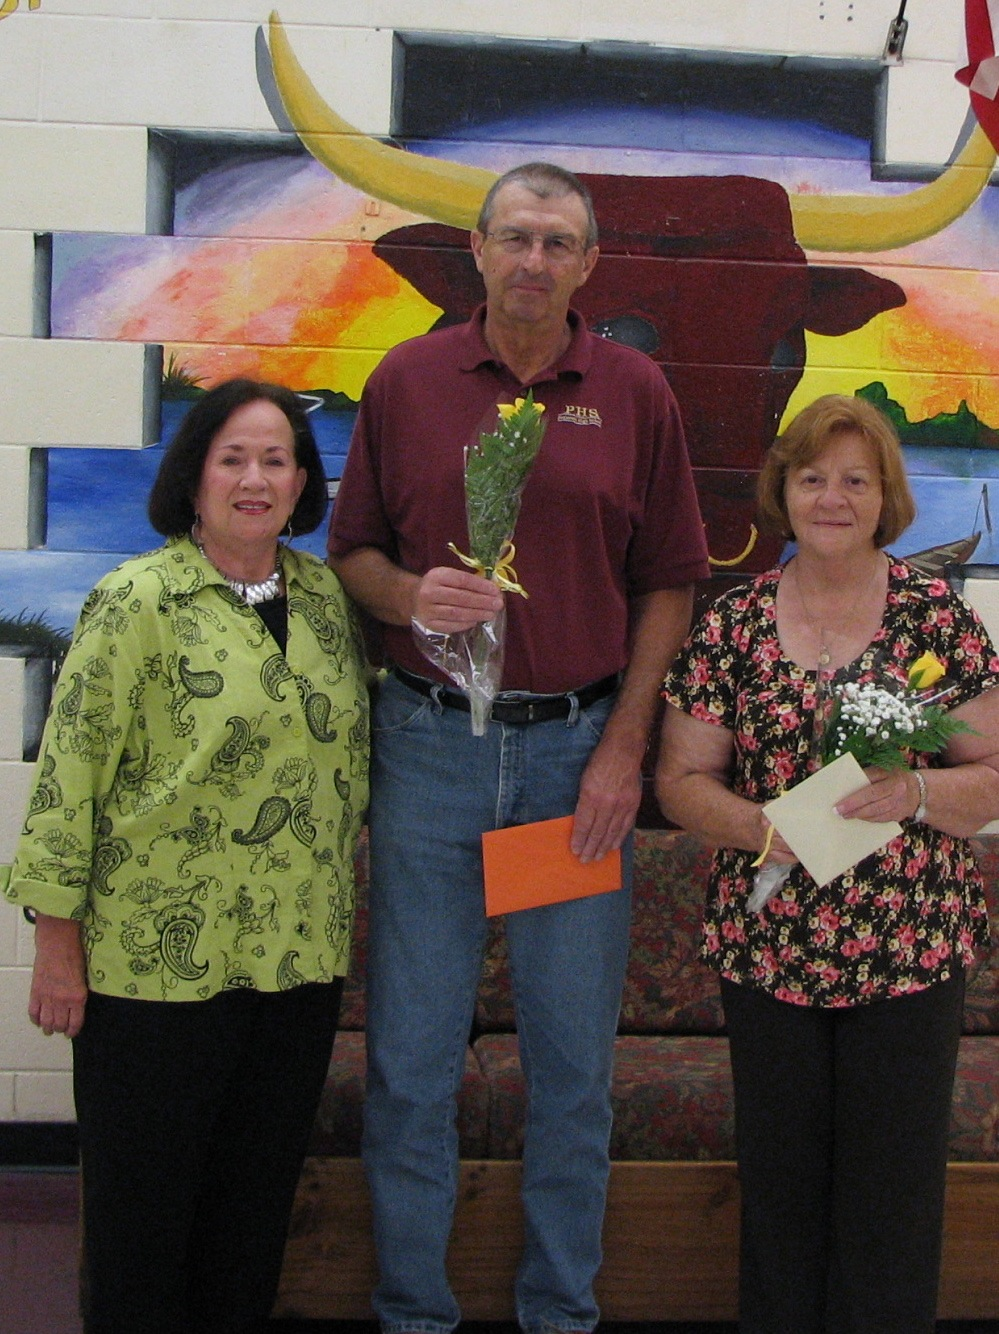 retirees-2012-john-forrest-and-betty-duty-phs.jpg